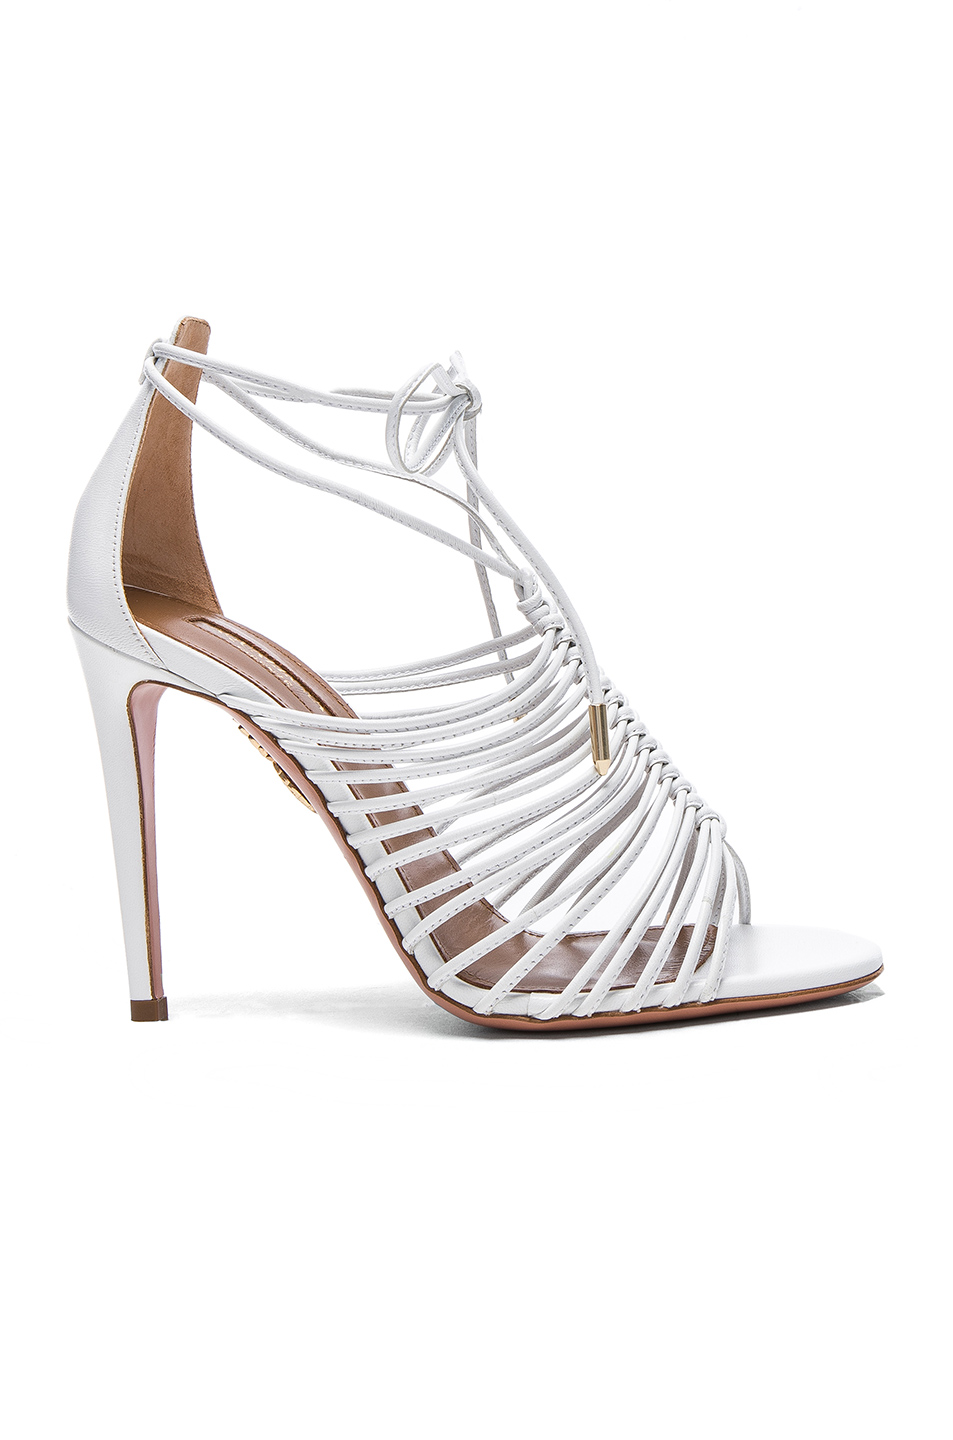 Aquazzura Leather Nadja Heels in White